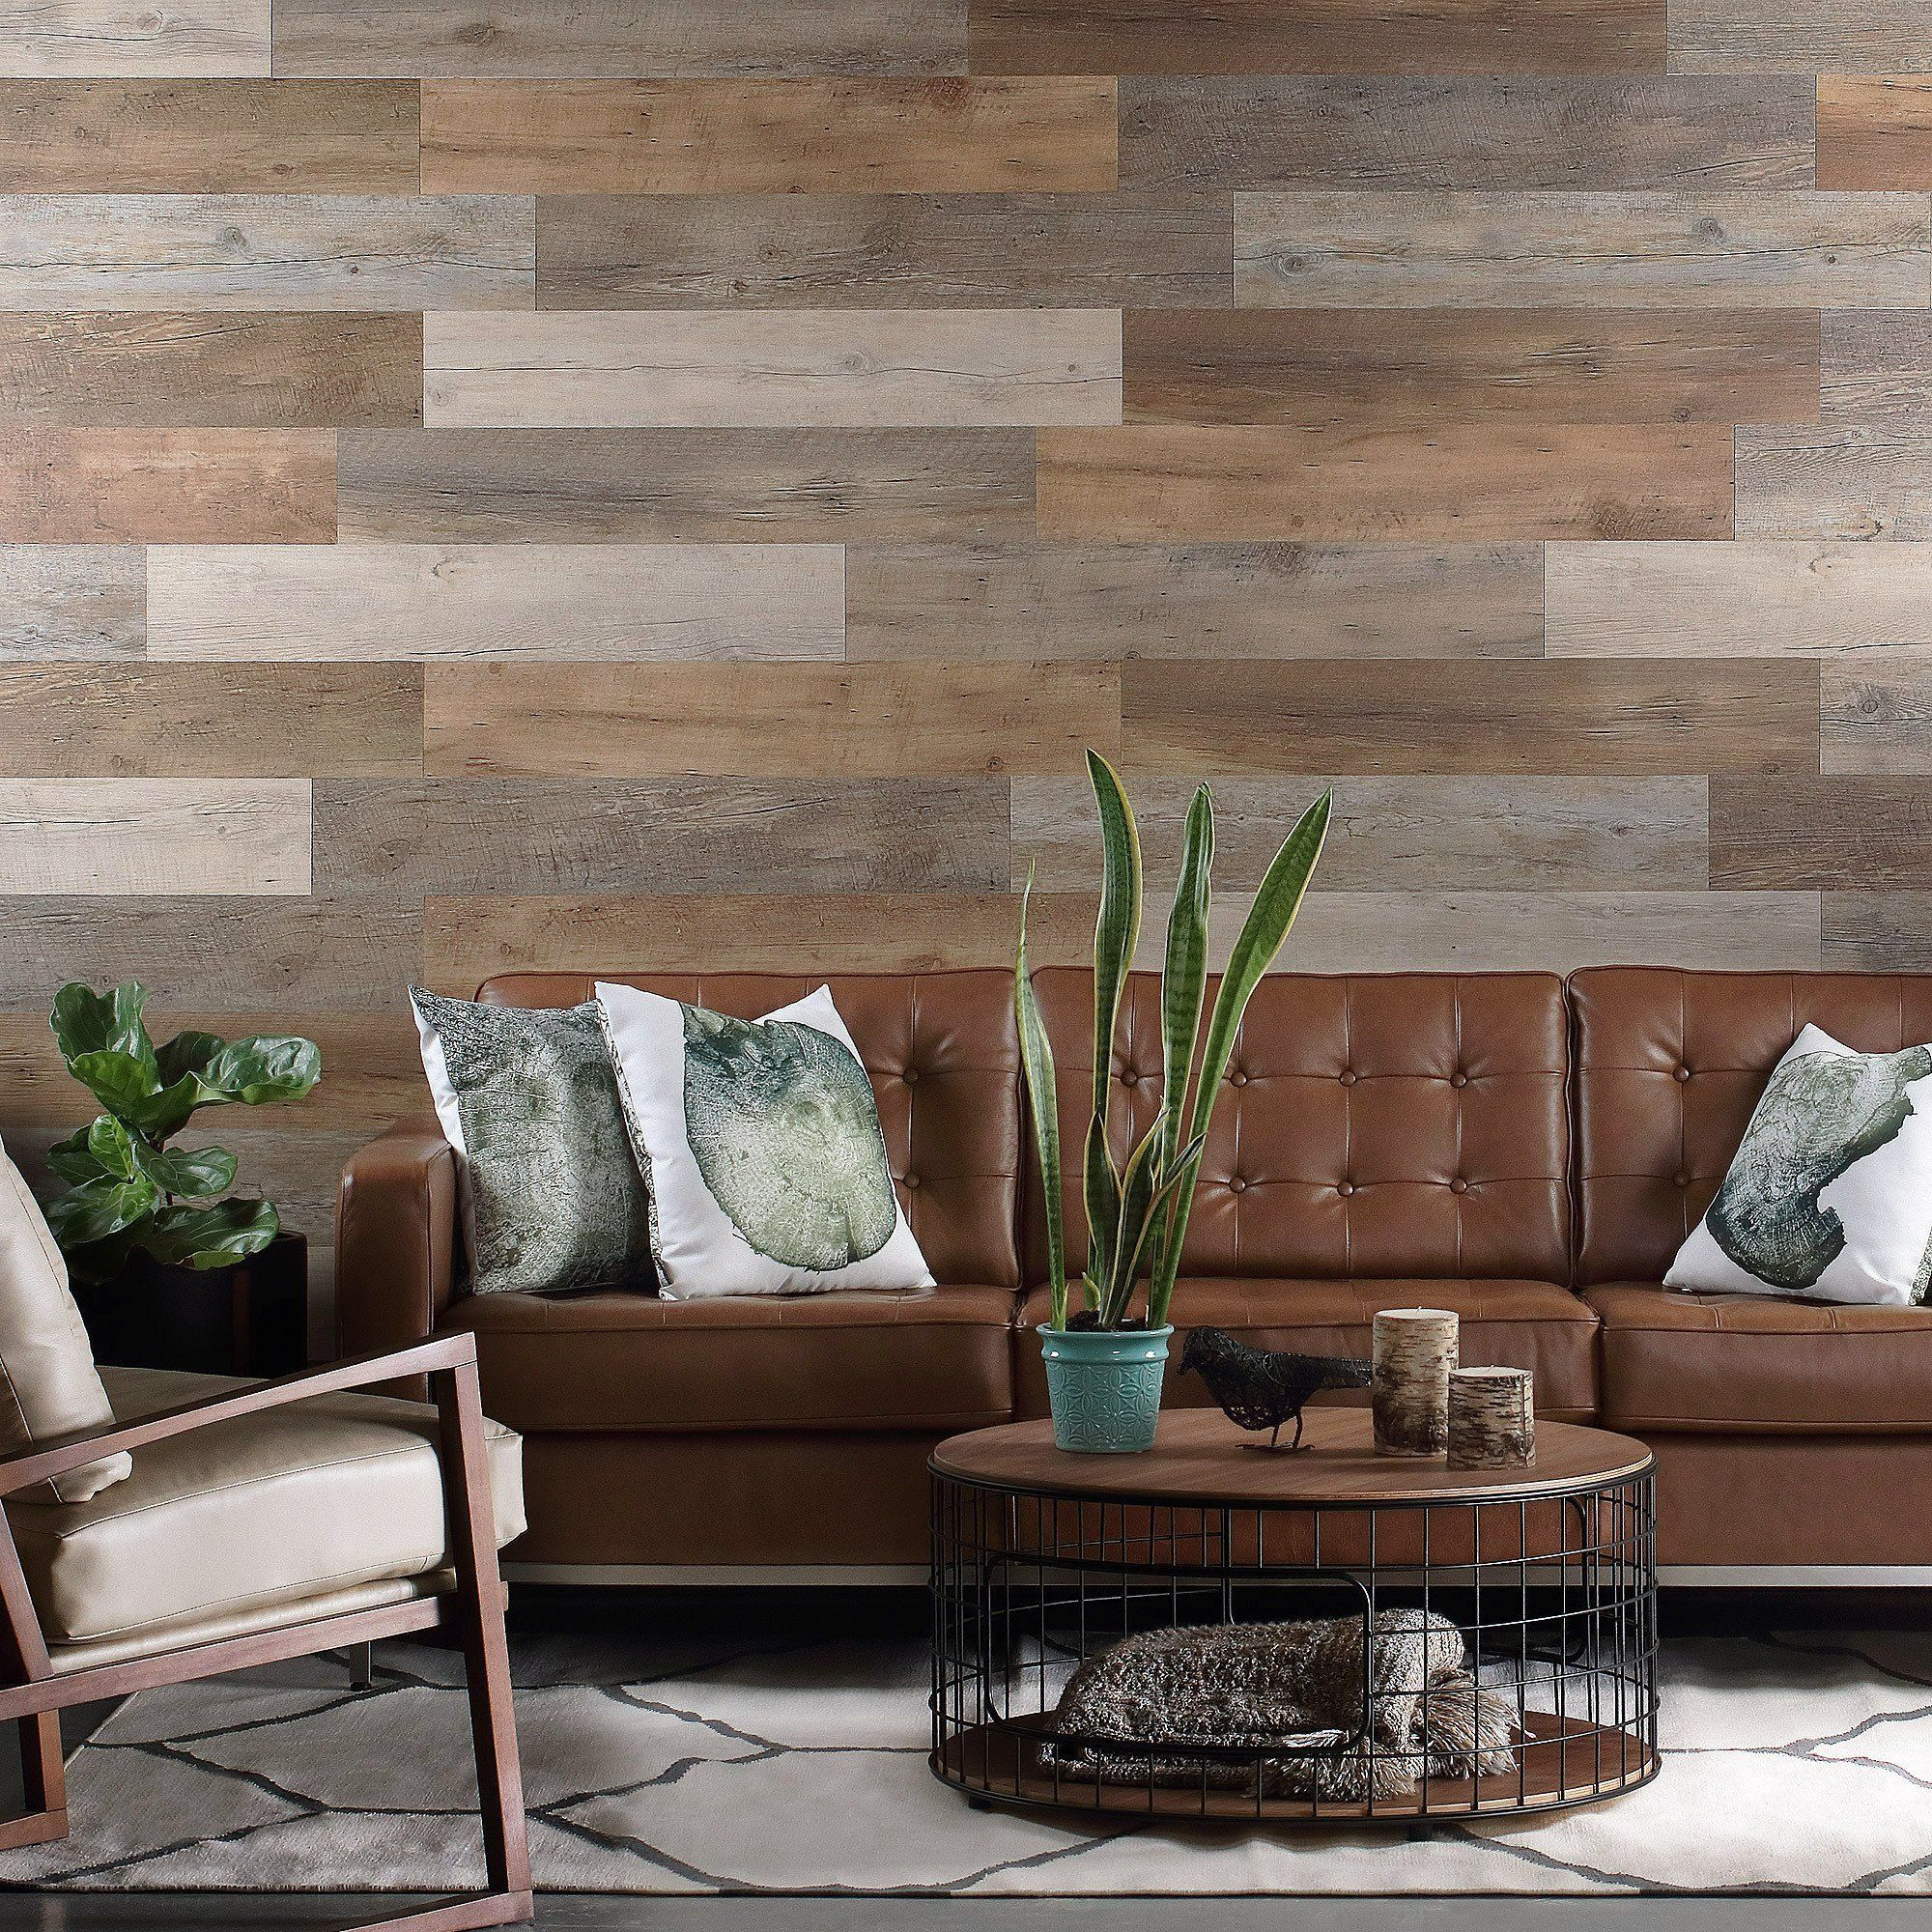 Salvaged Pallet Wood Look Peel and Stick Wall Planks